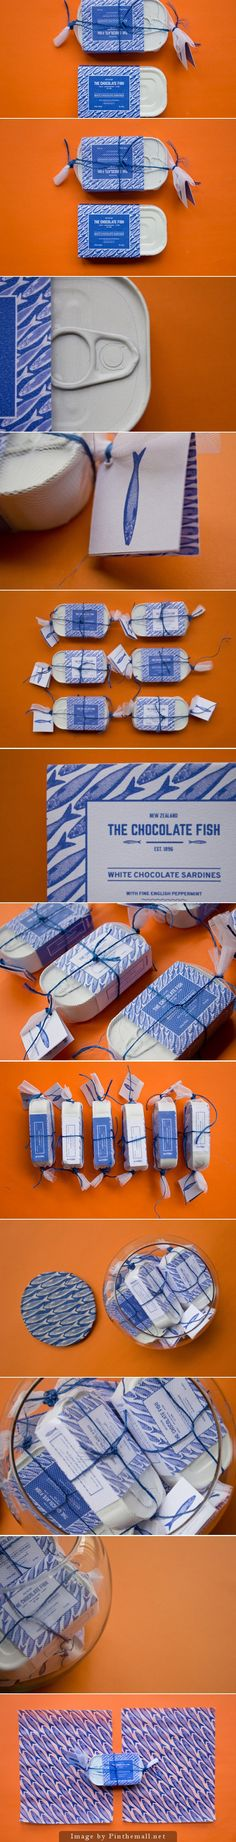 The chocolate fish / The chocolate fish is a New Zealand chocolate brand, that sells chocolate sardines destined to children. As a New Zealander I grew up munching chocolate marshmellow filled fish. Love this idea that takes the tradition up a step! Packaging Box Design, Cool Packaging, Print Packaging, Label Design, Web Design, Package Design, Packaging Inspiration, Chocolate Packaging, Identity Design